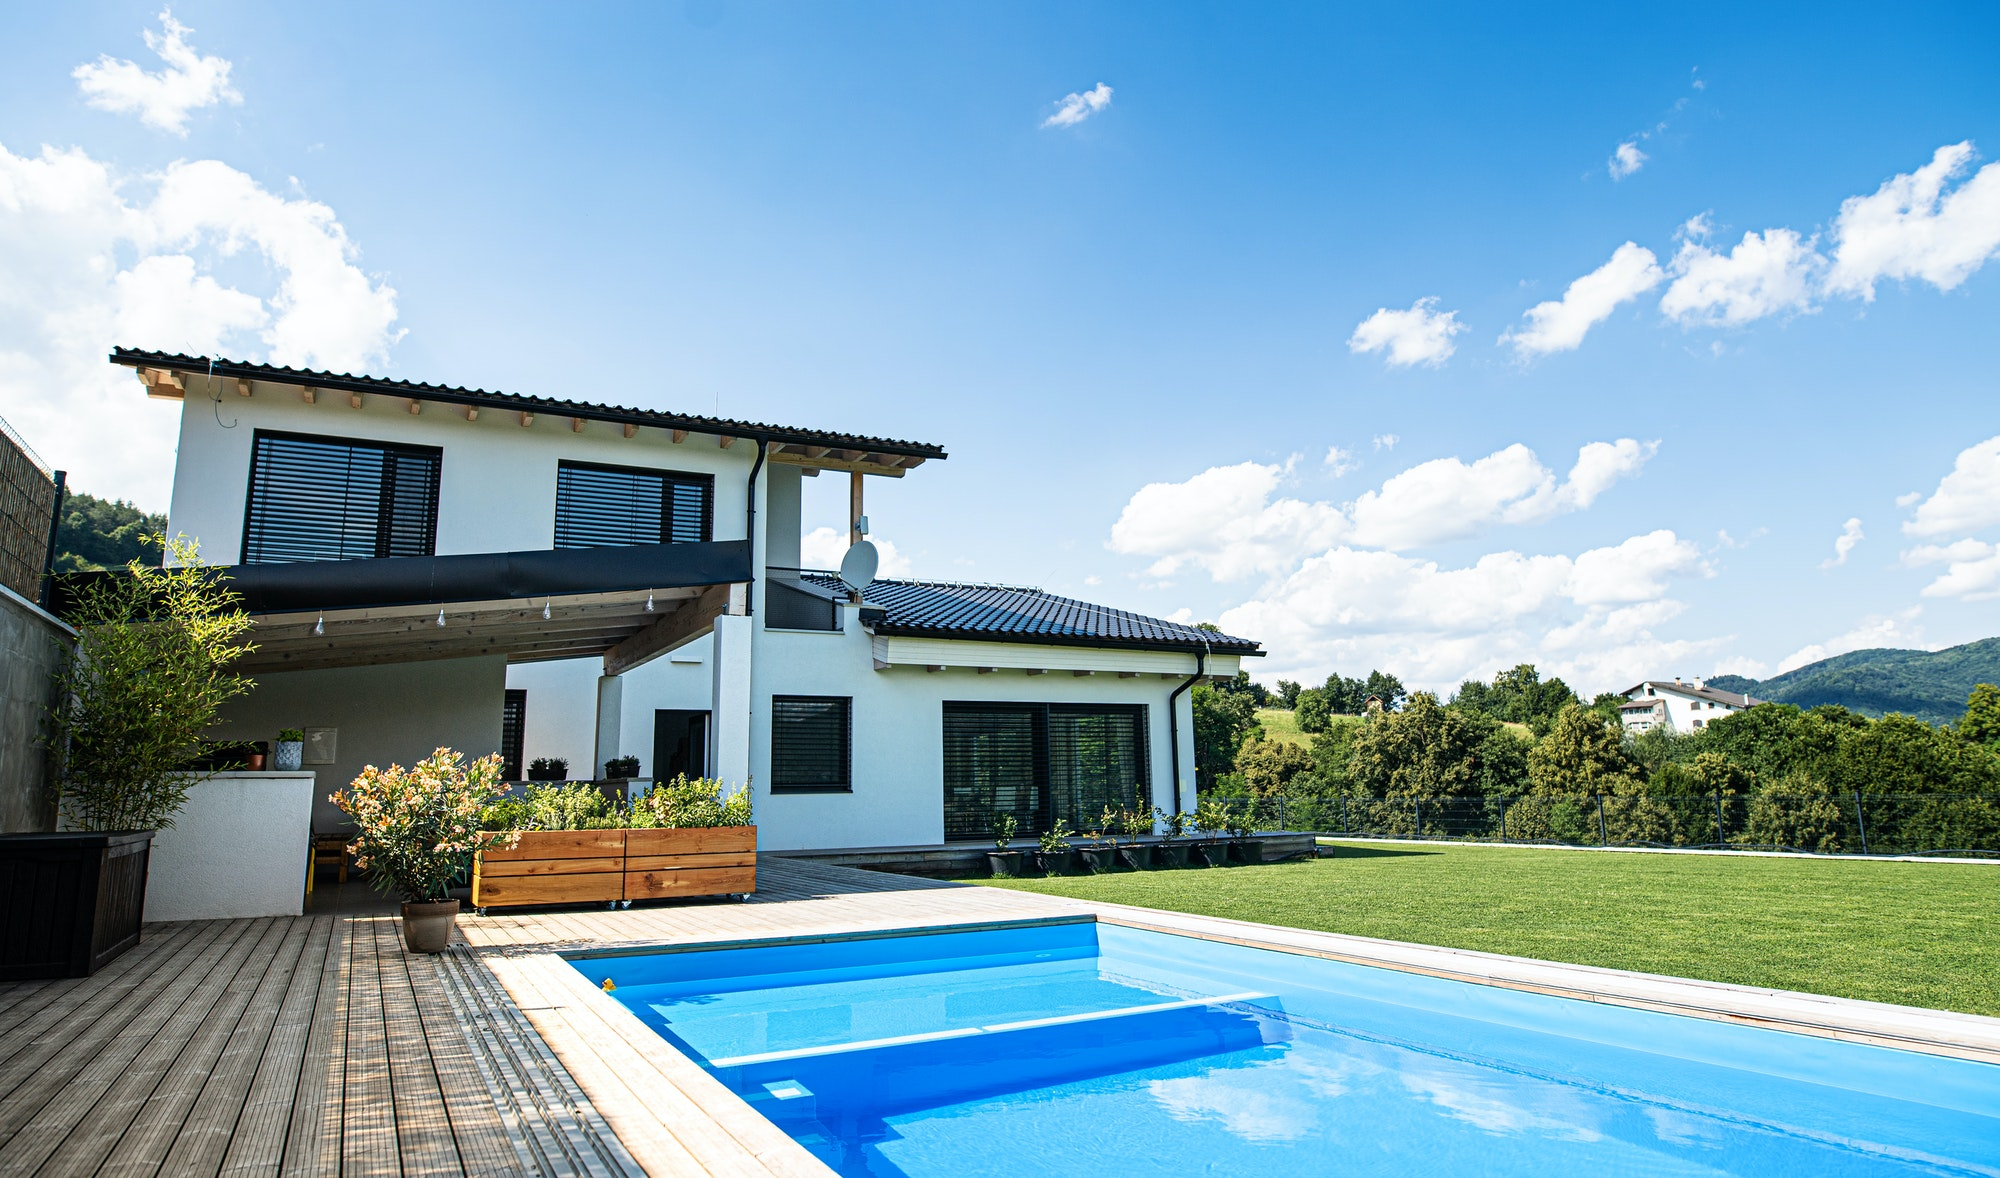 House with swimming pool outdoors in backyard garden